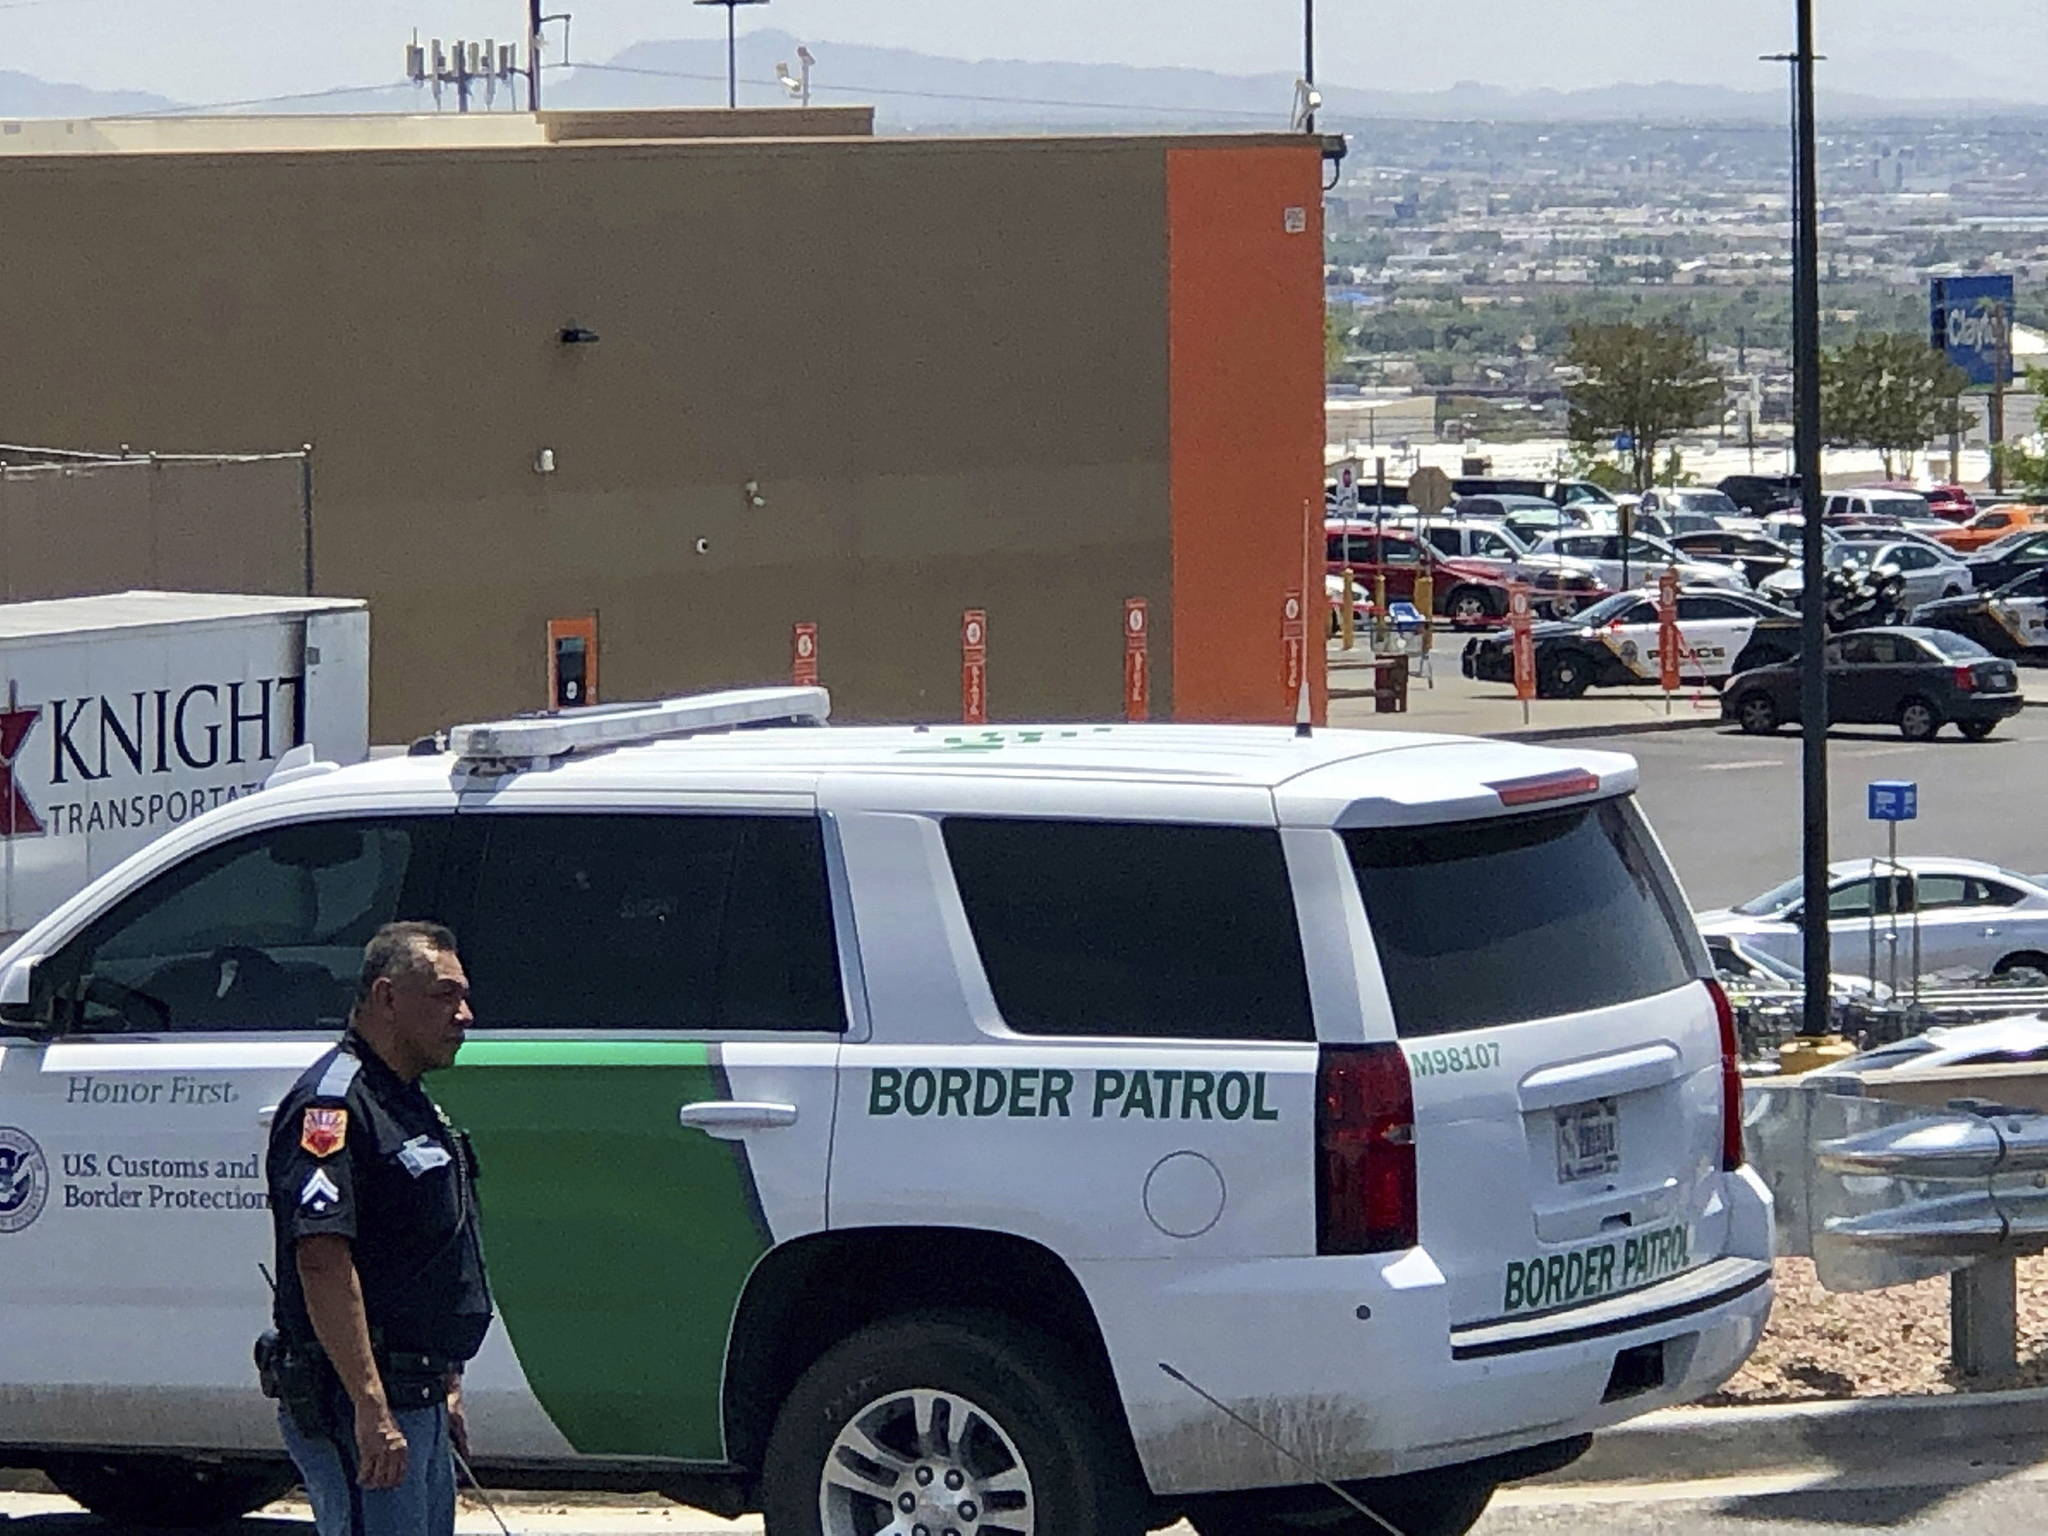 Law enforcement work the scene of a shooting at a shopping mall in El Paso, Texas, on Saturday, Aug. 3, 2019. Twenty people were killed and one person was in custody after a shooter went on a rampage at a shopping mall, police in the Texas border town of El Paso said. (AP Photo/Rudy Gutierrez)